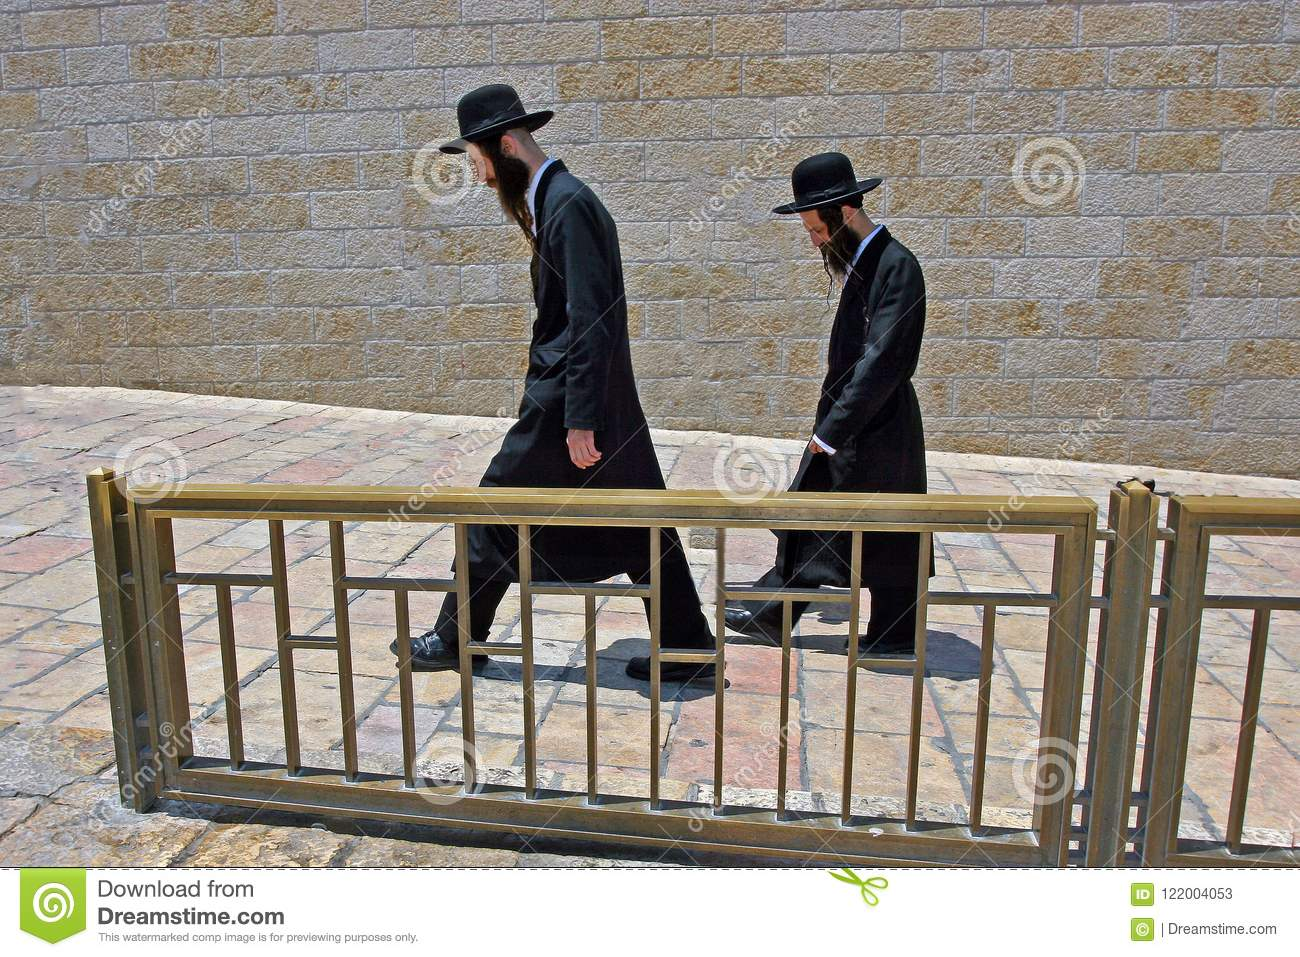 Jerusalem, Israel, 06.07.2007 two Jews with a beards in a black hats and a black robes are walking down the street